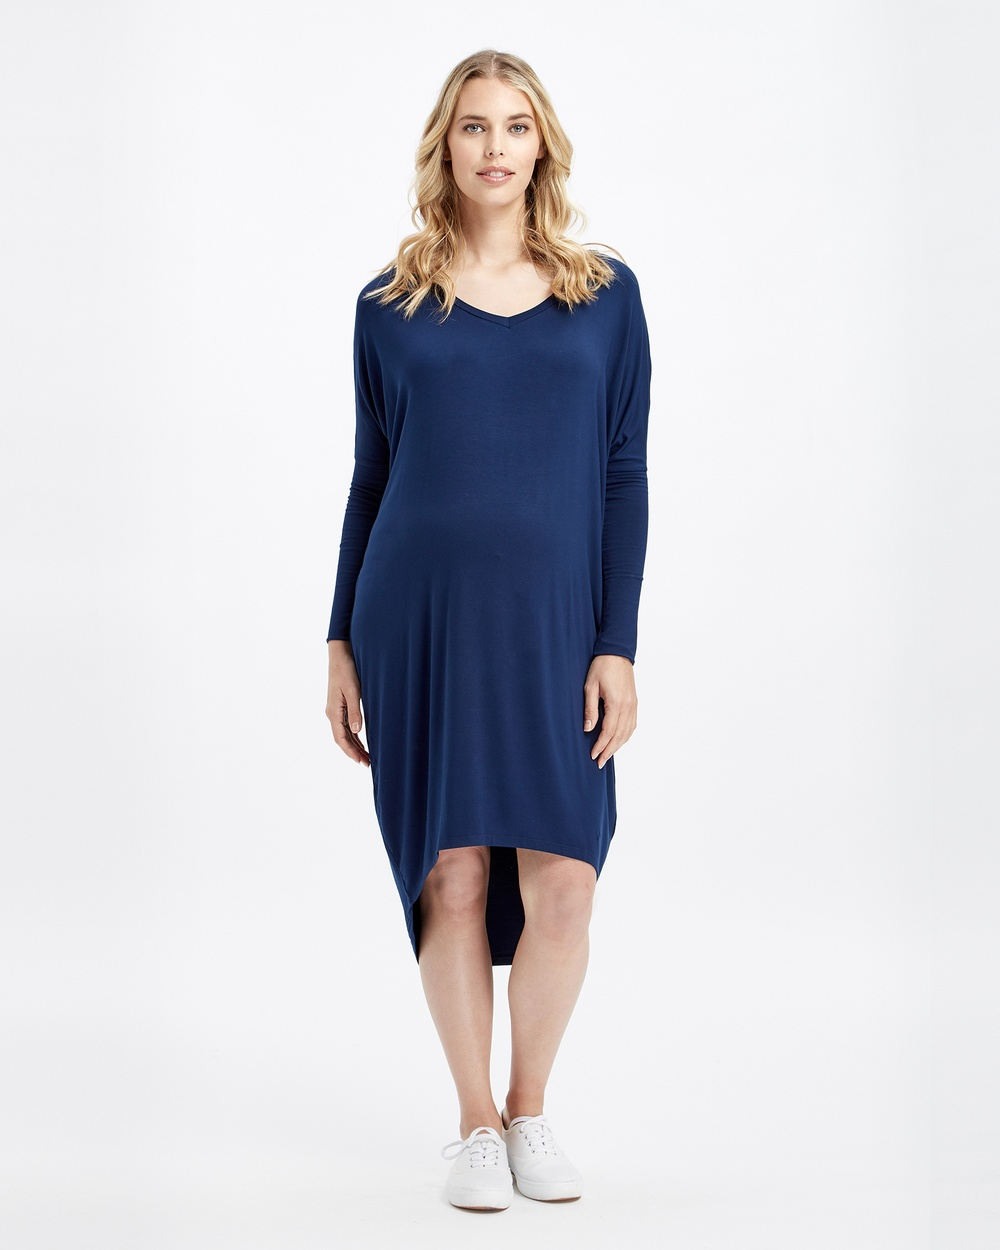 Bamboo Body Catherine Bamboo Dress Dresses Navy Catherine Bamboo Dress